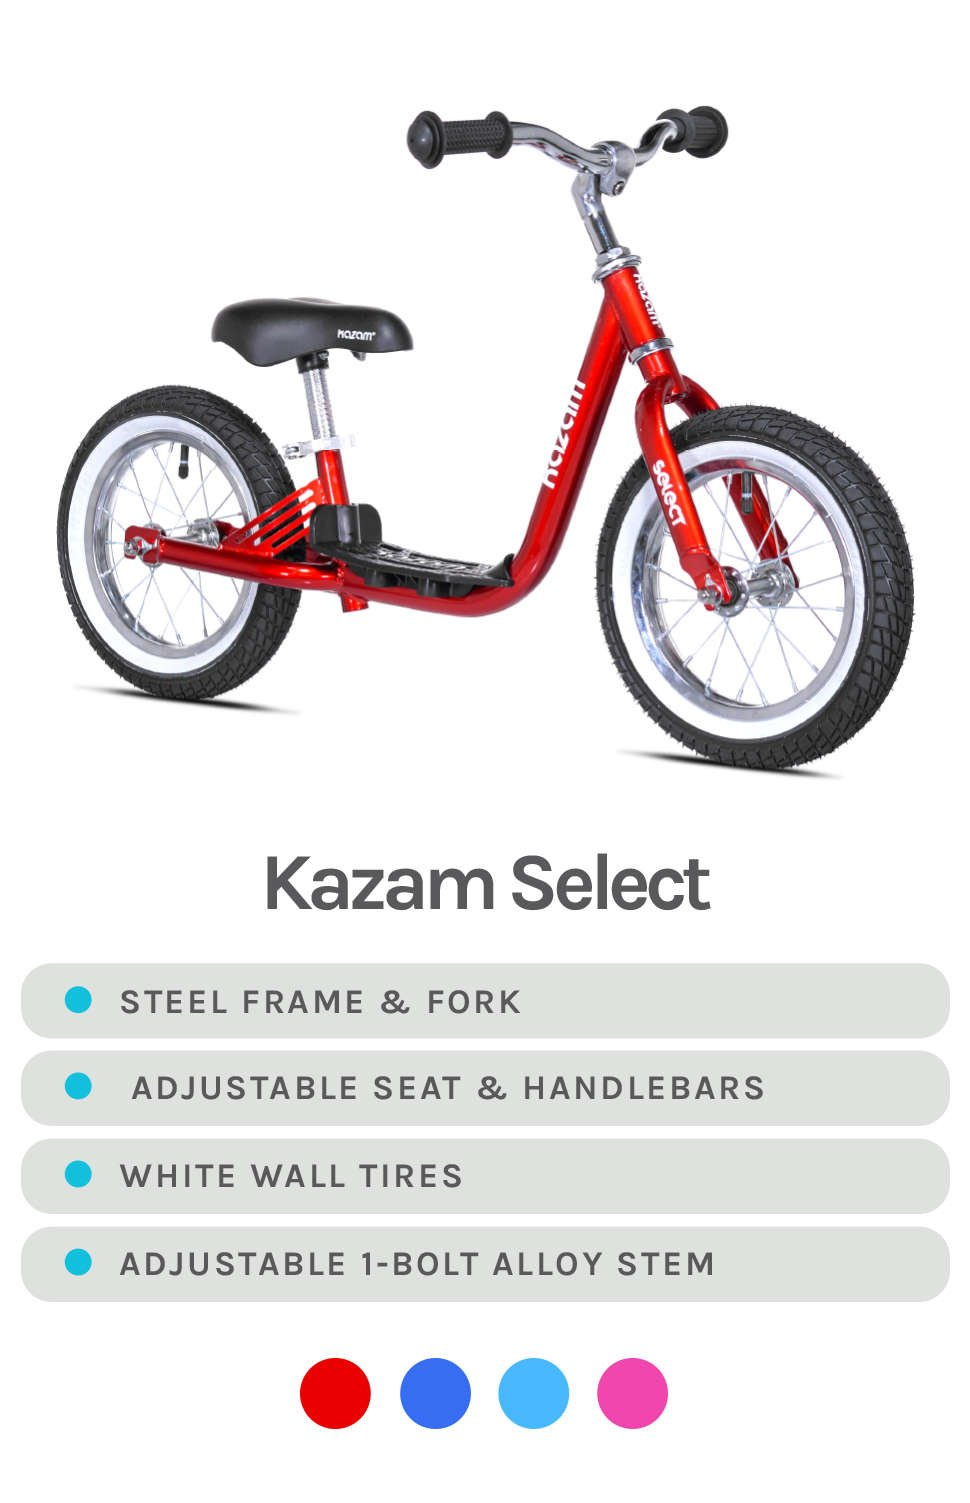 Red Kazam Select Featured - Specs - Steel Frame & Fork, Adjustable Seat & Handlebars, White Wall Tires, and Adjustable 1-Bolt Alloy Stem - Available in Colors Red, Blue, Light Blue, and Pink